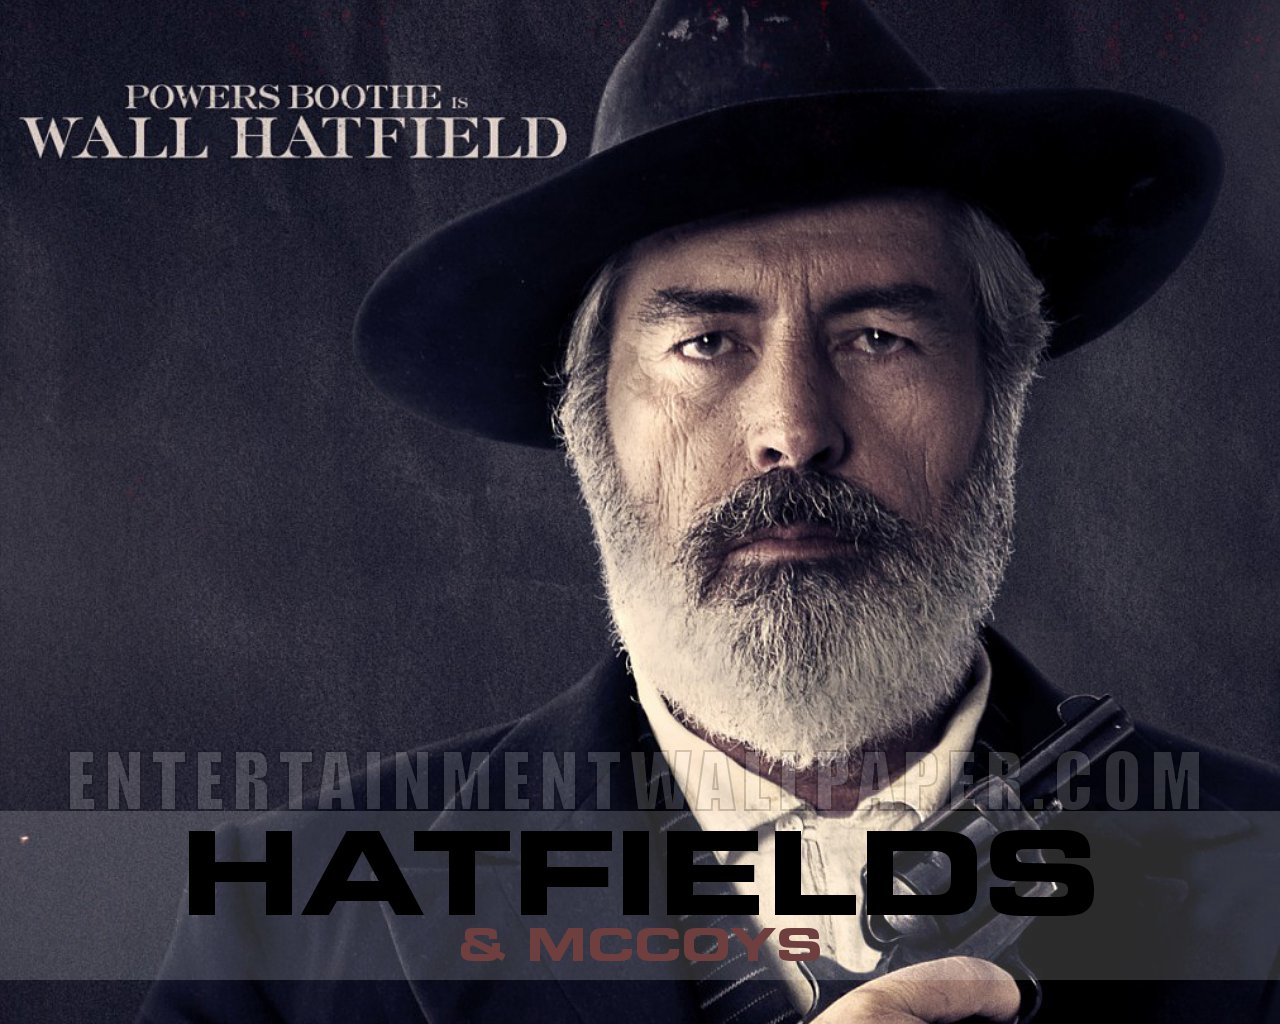 Wall Hatfield - Hatfields & McCoys Wallpaper (32127462) - Fanpop ...